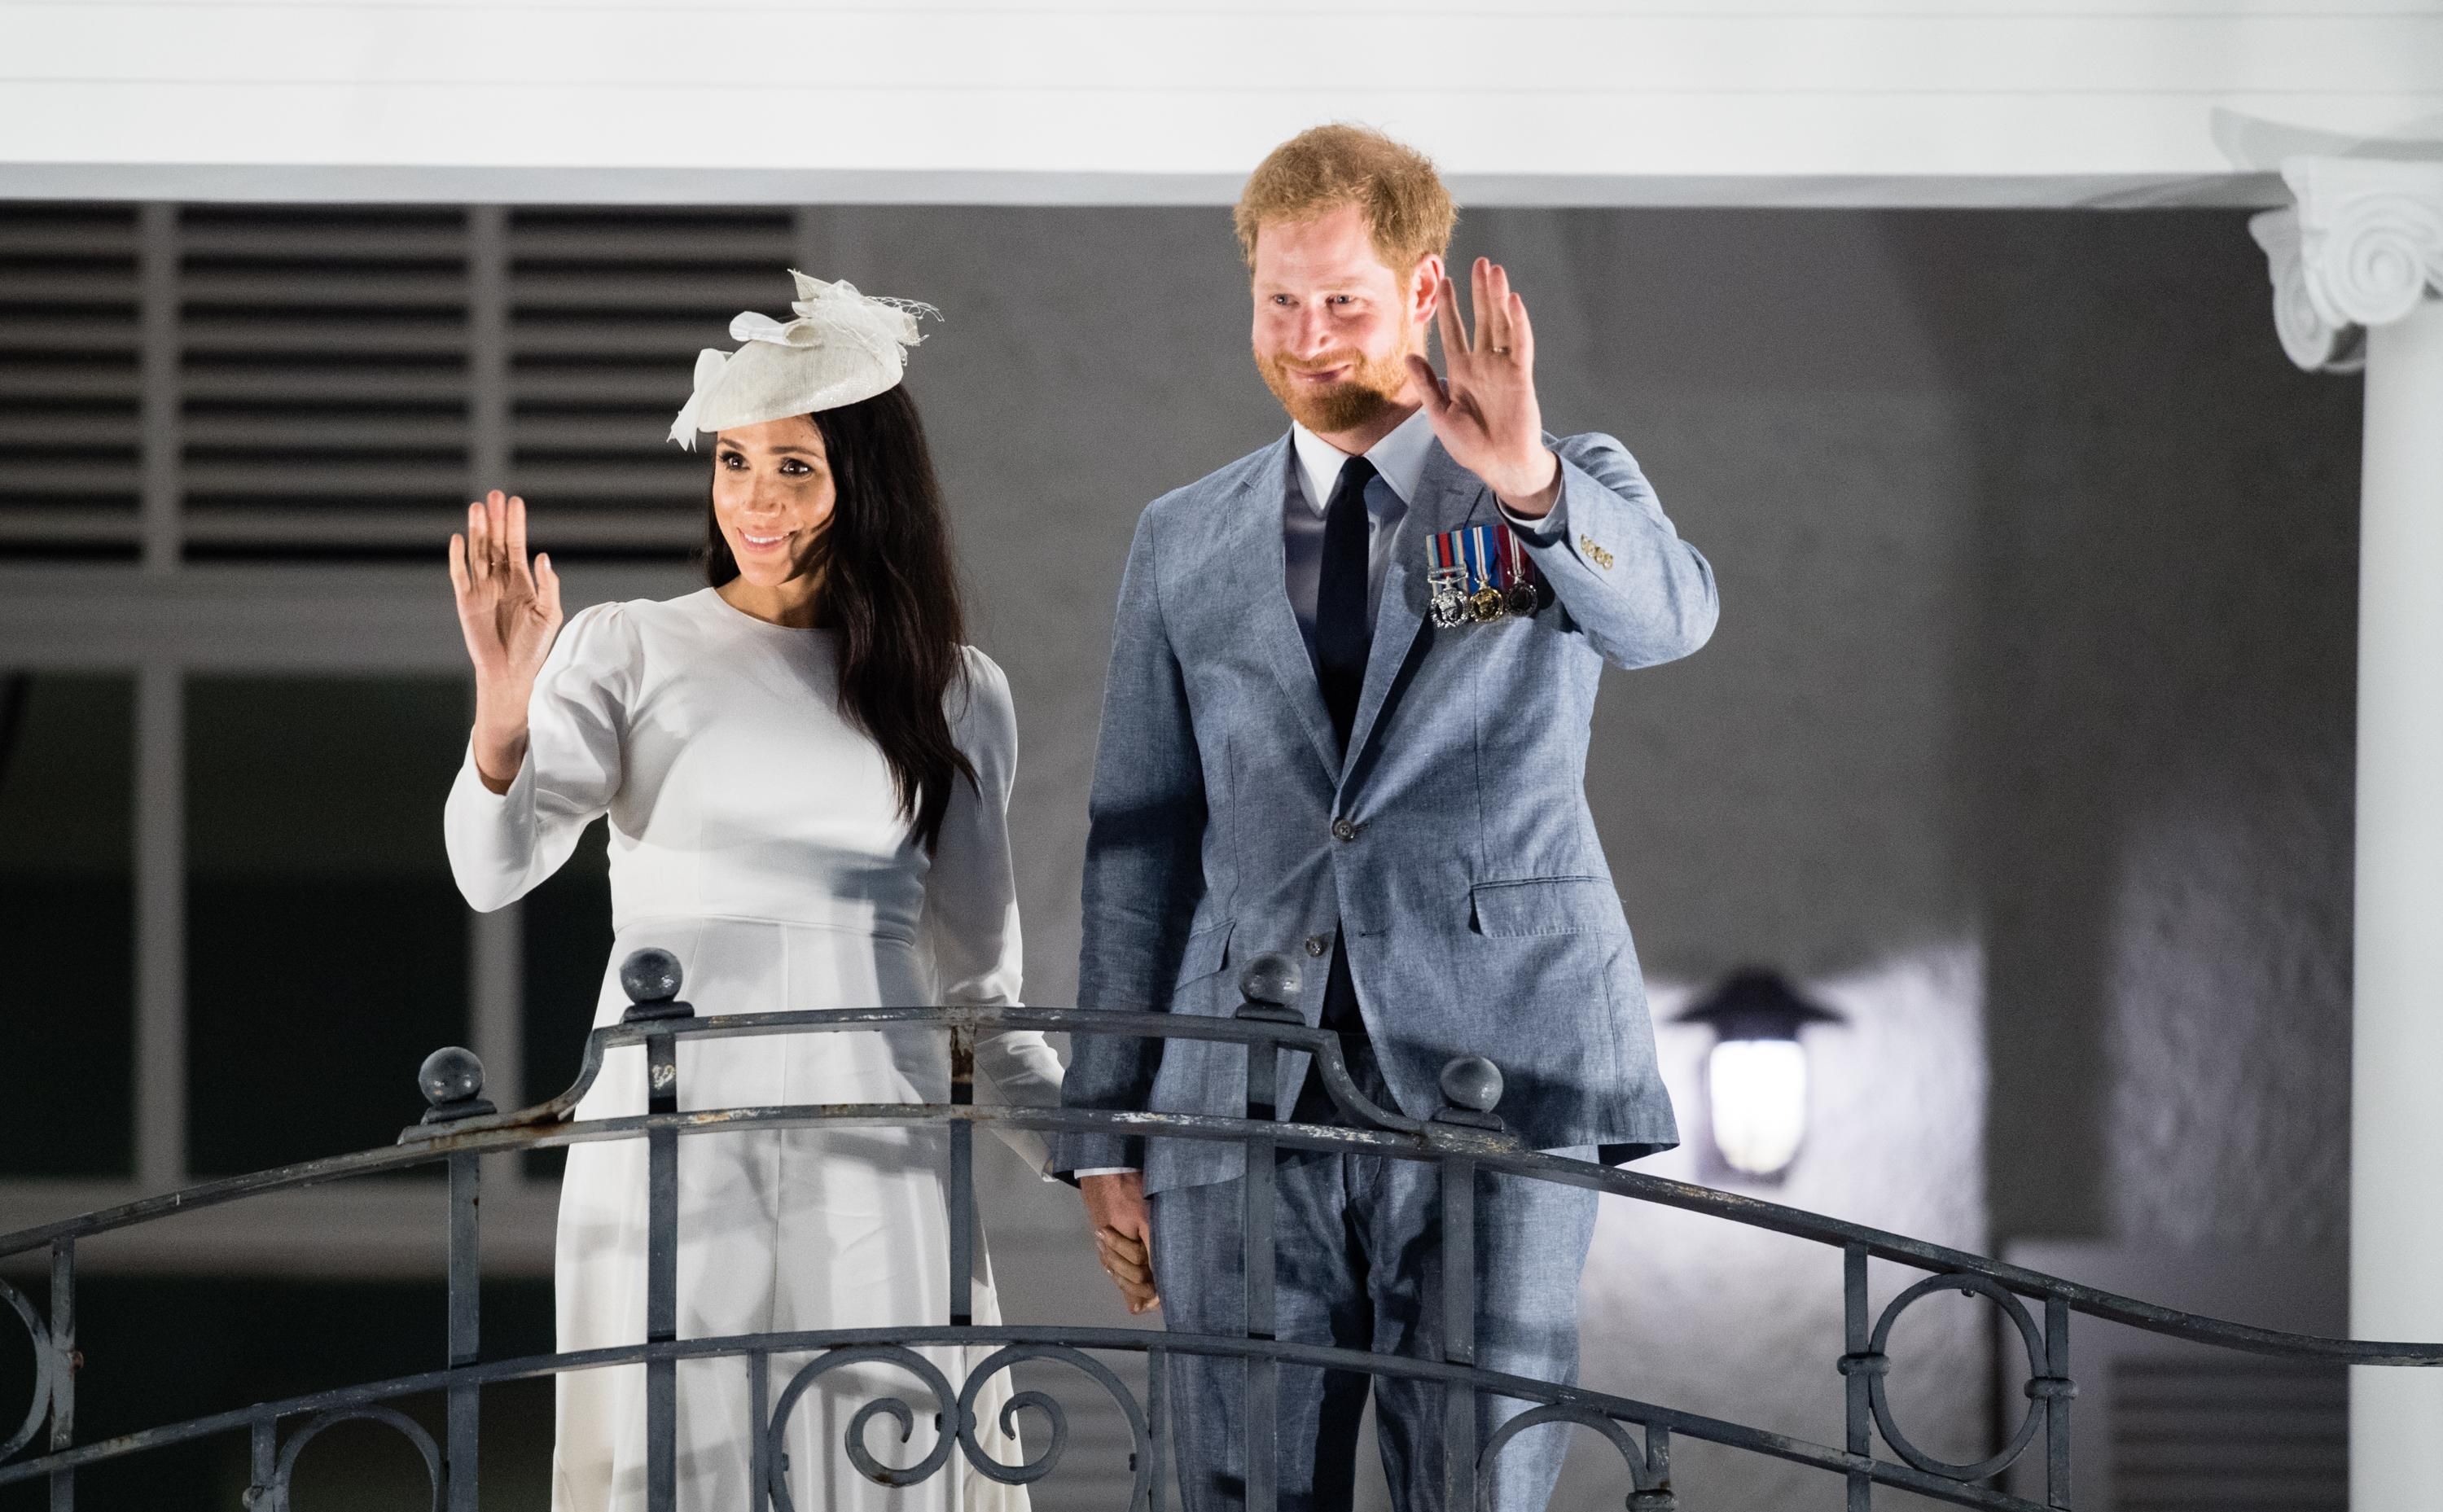 Will losing Sussex Royal impact Harry and Meghan's brand power?